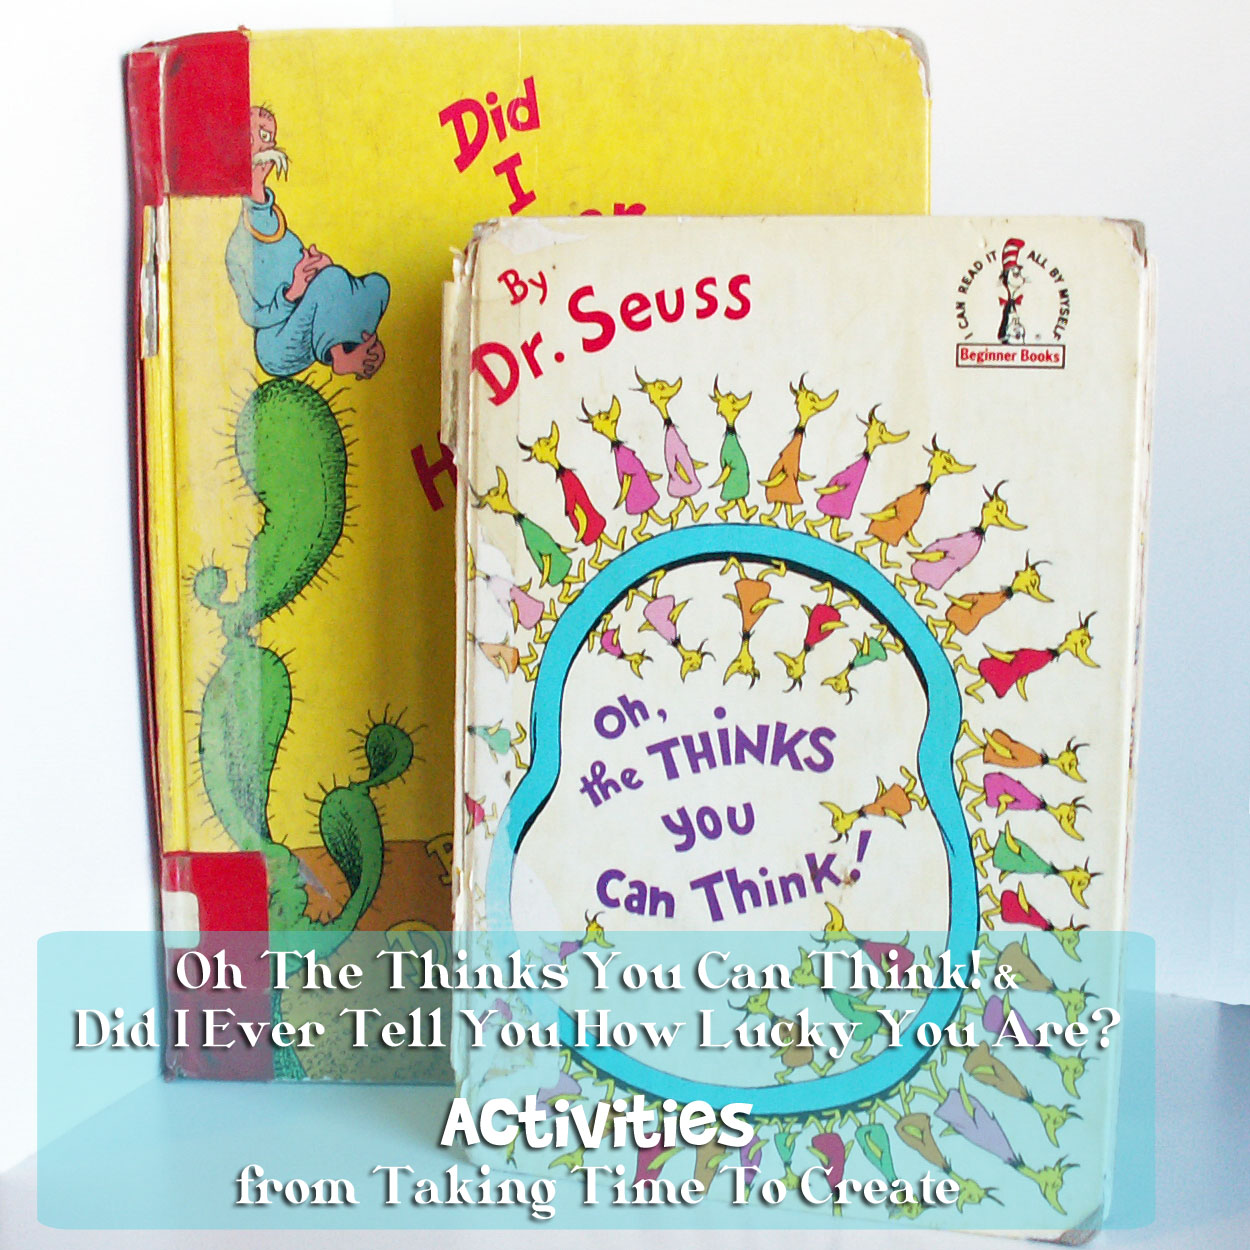 Dr Seuss Quotes Oh The Thinks You Can Think: Taking Time To Create: Dr. Seuss Activities